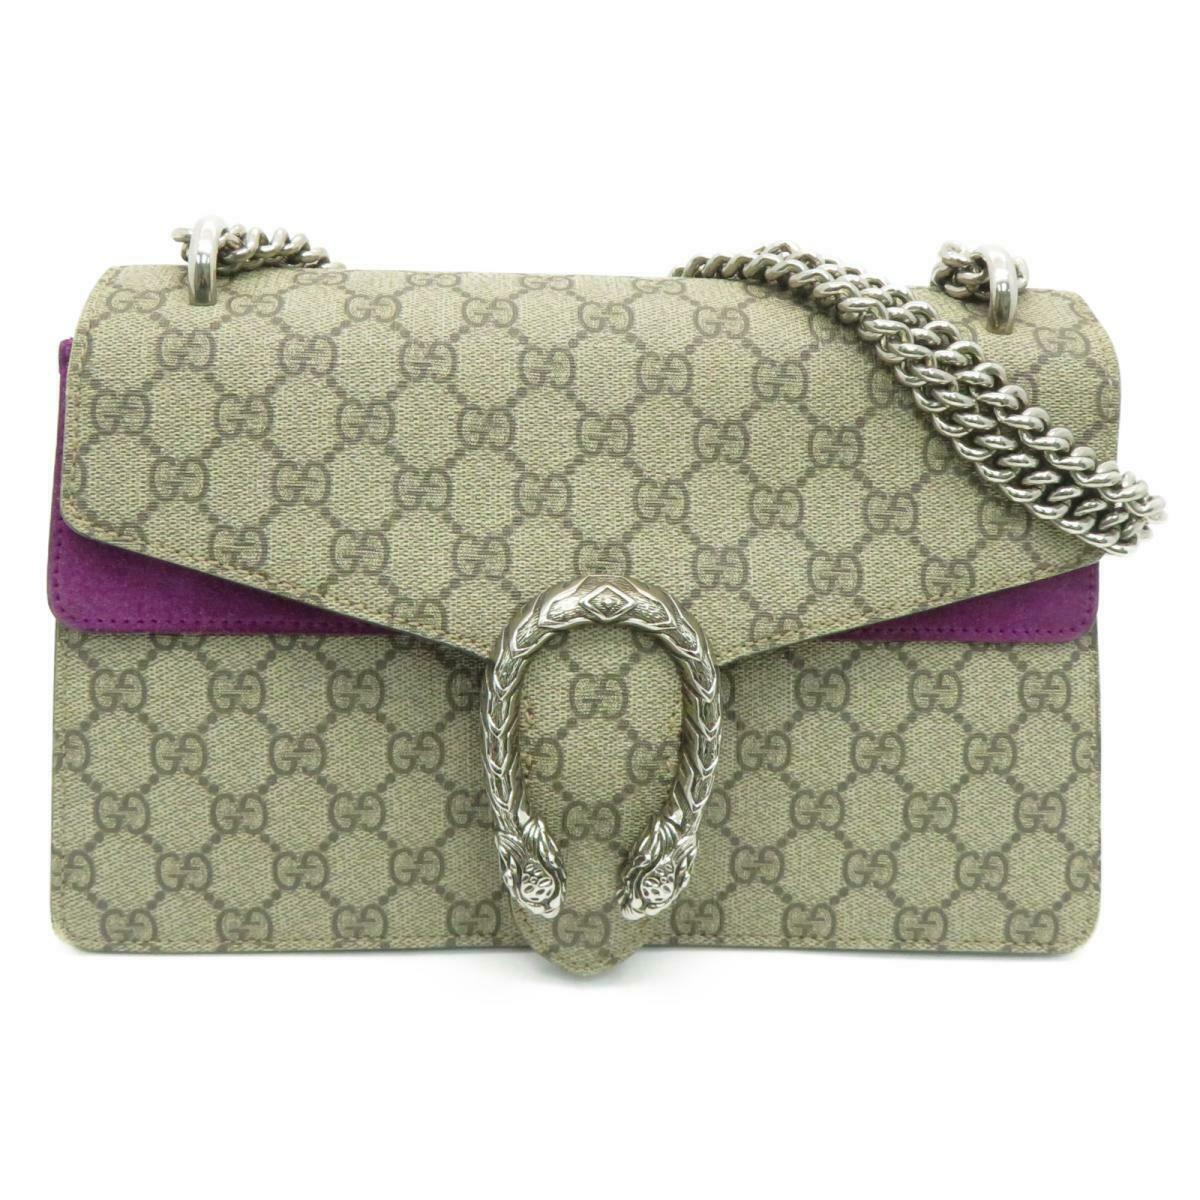 Gucci GG Supreme Dionysus Small Shoulder Handbag Beige Purple